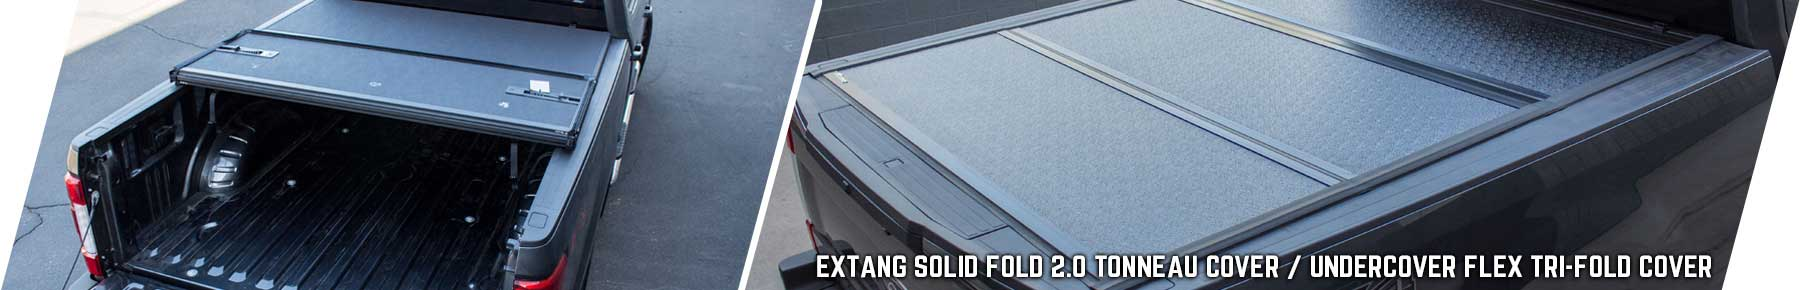 Extang-Solid-Fold-2.0-Tonneau-Cover-Undercover-Flex-Tri-Fold-Cover